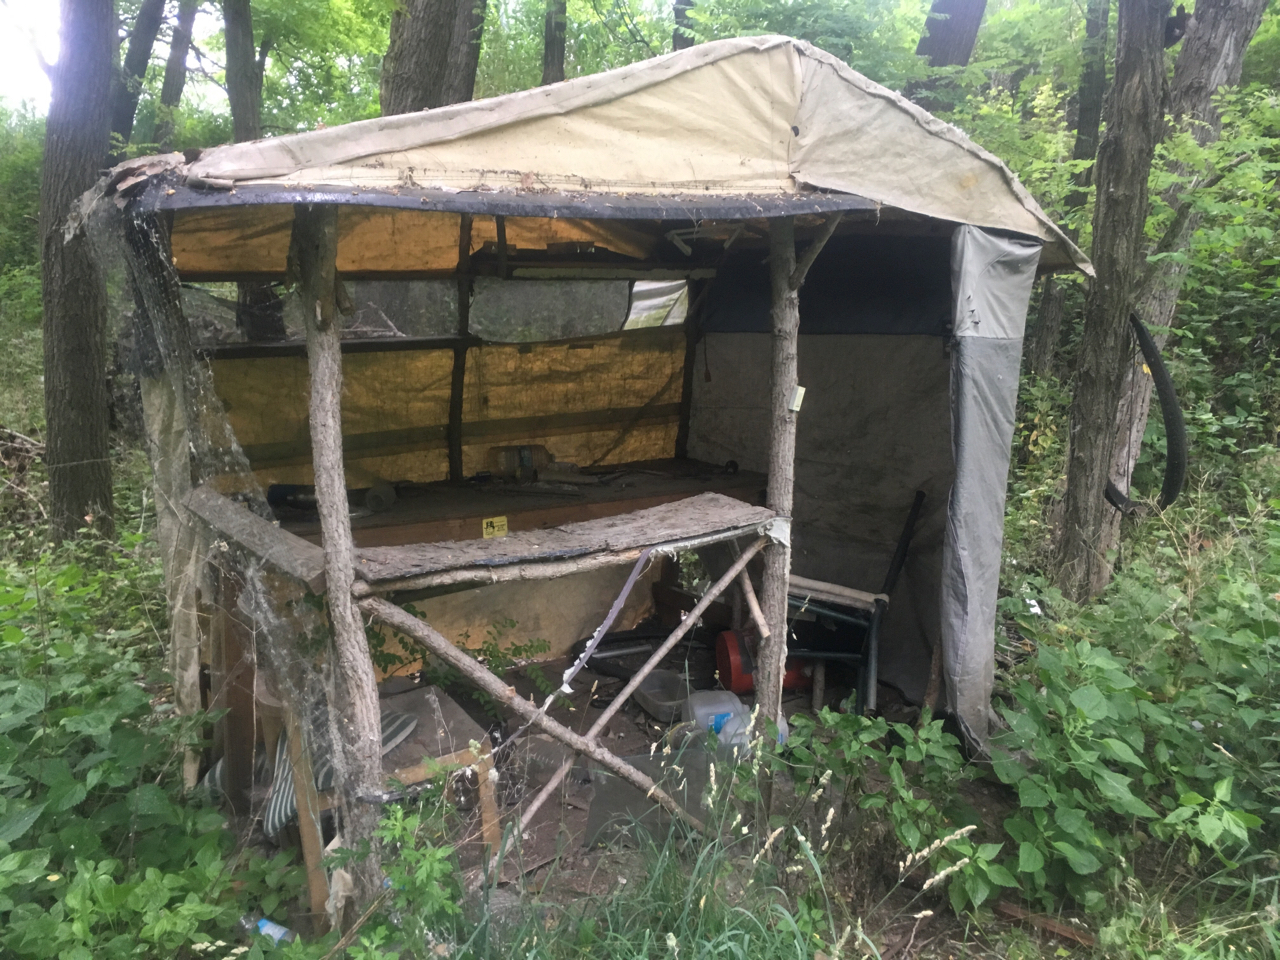 Shelter off the grid